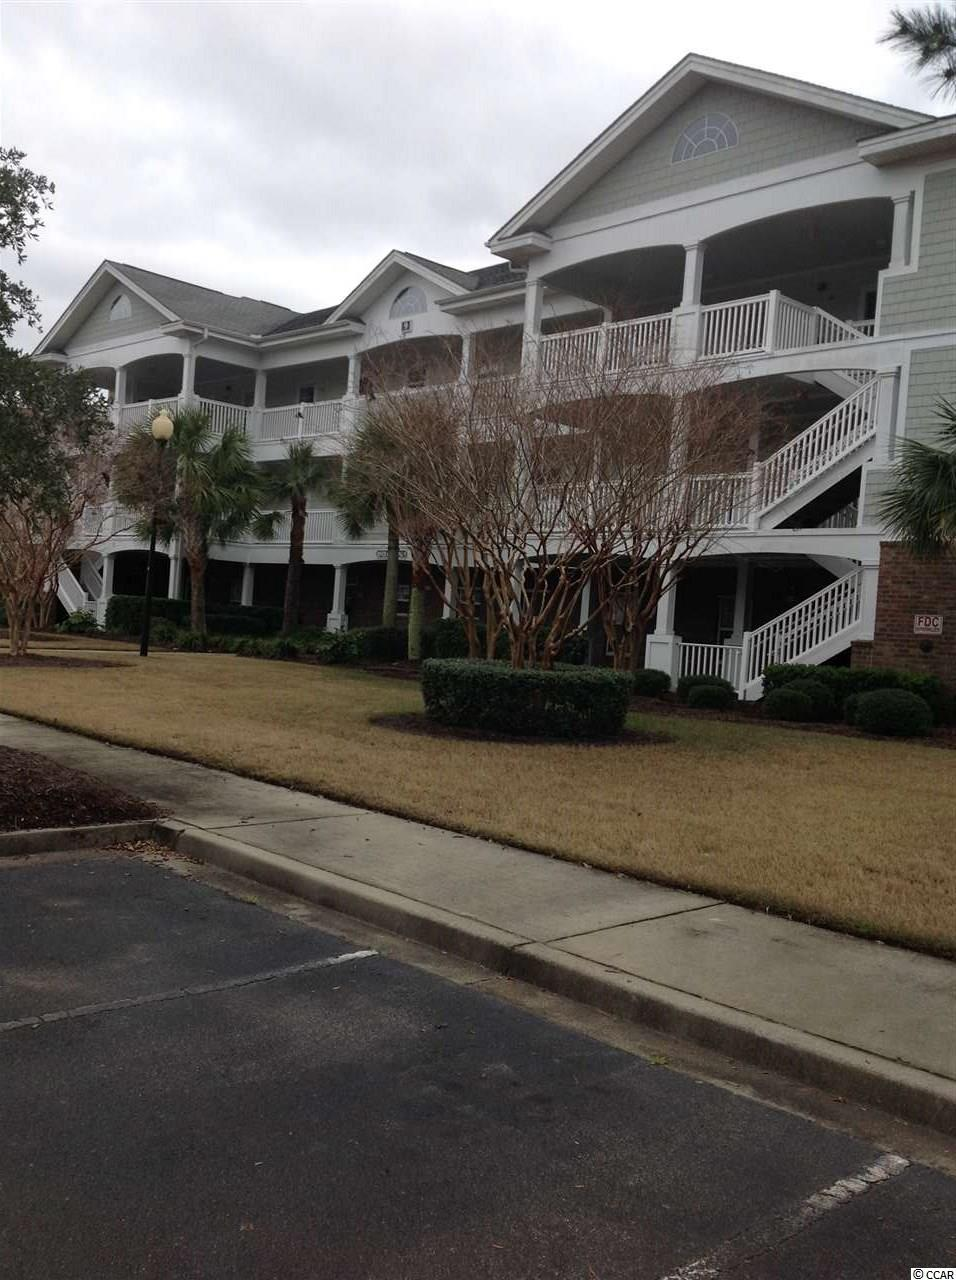 This unit is a must see! This two bedroom, two bathroom end unit condo cannot be overlooked. The top floor vaulted ceilings give it wonderful views. Appliances have been recently upgraded. The HVAC and water heater were just replaced in 2016. The refrigerator and microwave were replaced in 2017. In 2018 the washer and dryer were replaced and in 2019 the garbage disposal was replaced. A transferable golf membership can be yours for a small fee. This also comes with all of the Barefoot amenities, private beach cabana with private shuttle service, clubhouses, gated parking at the beach, and a salt water pool. Come and enjoy the Barefoot Lifestyle today!